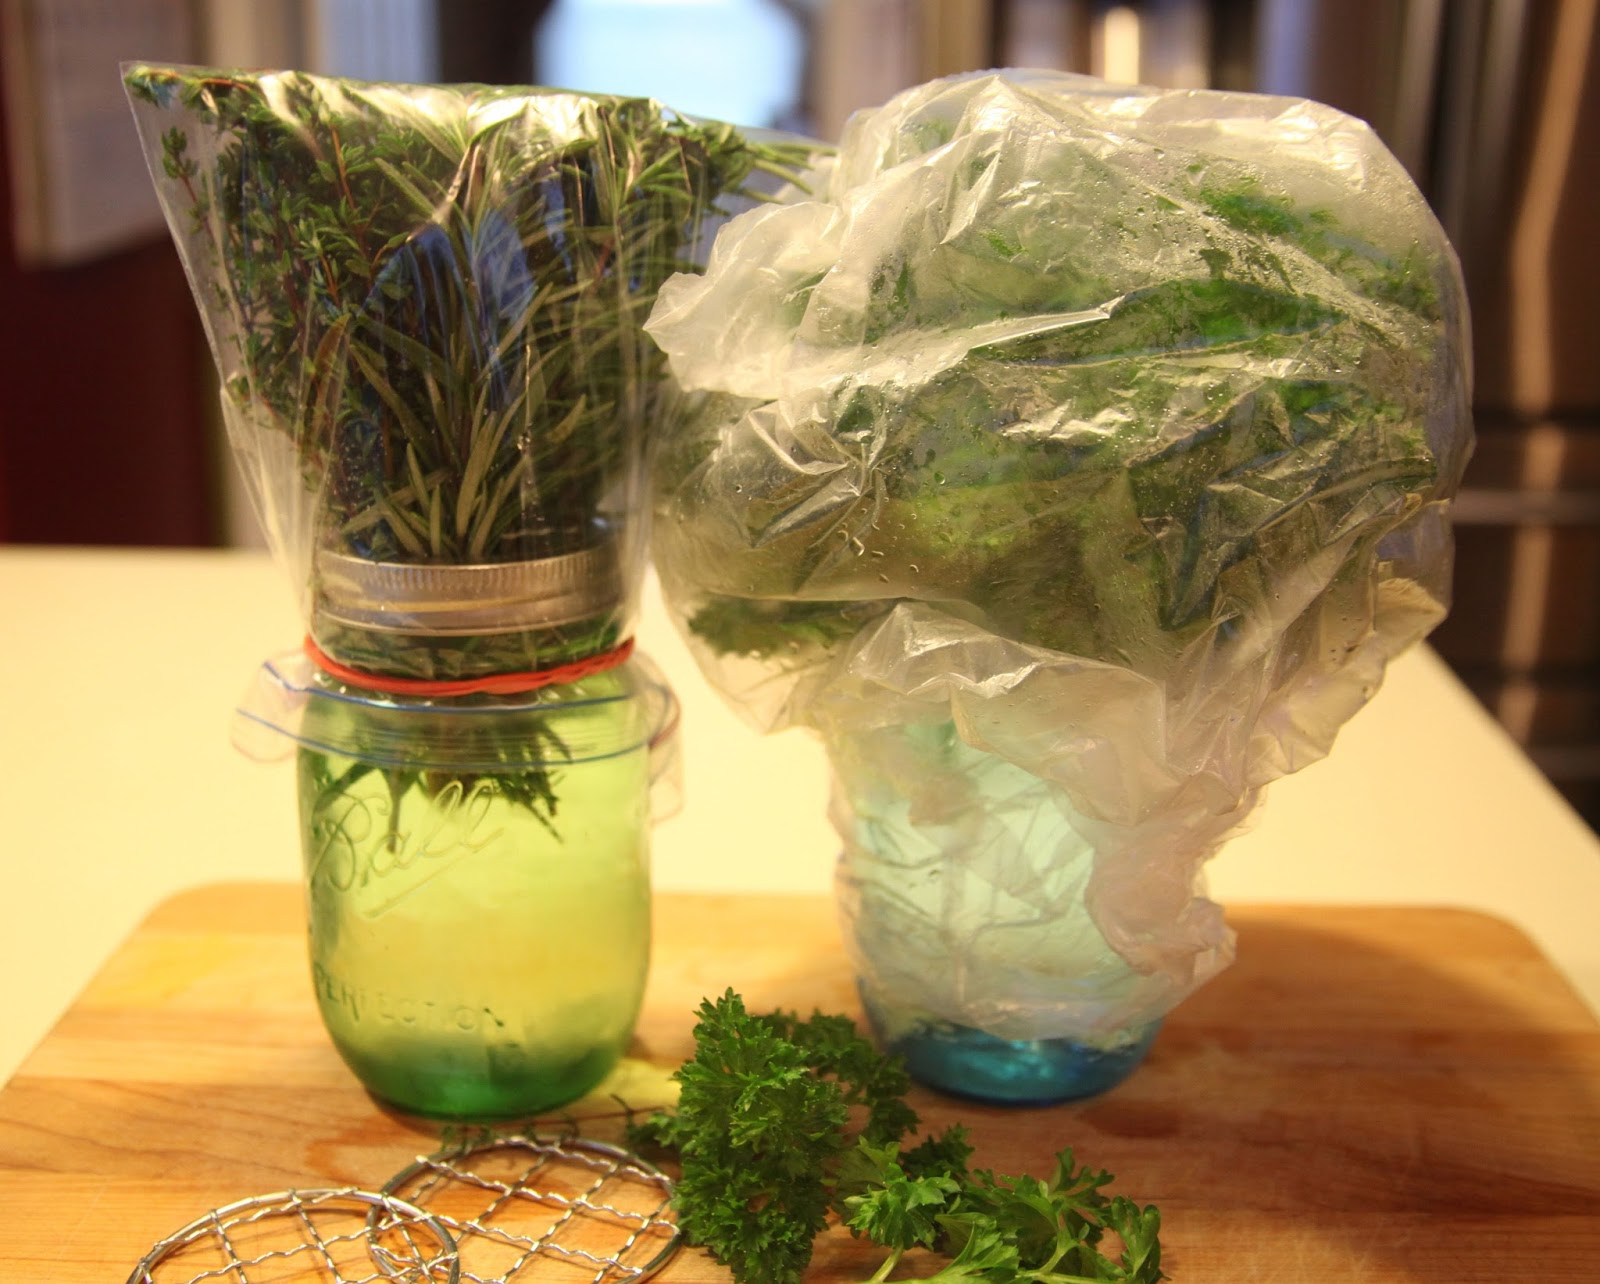 Store herbs like flowers in a vase, then cover with plastic, secure a rubberband & refrigerate